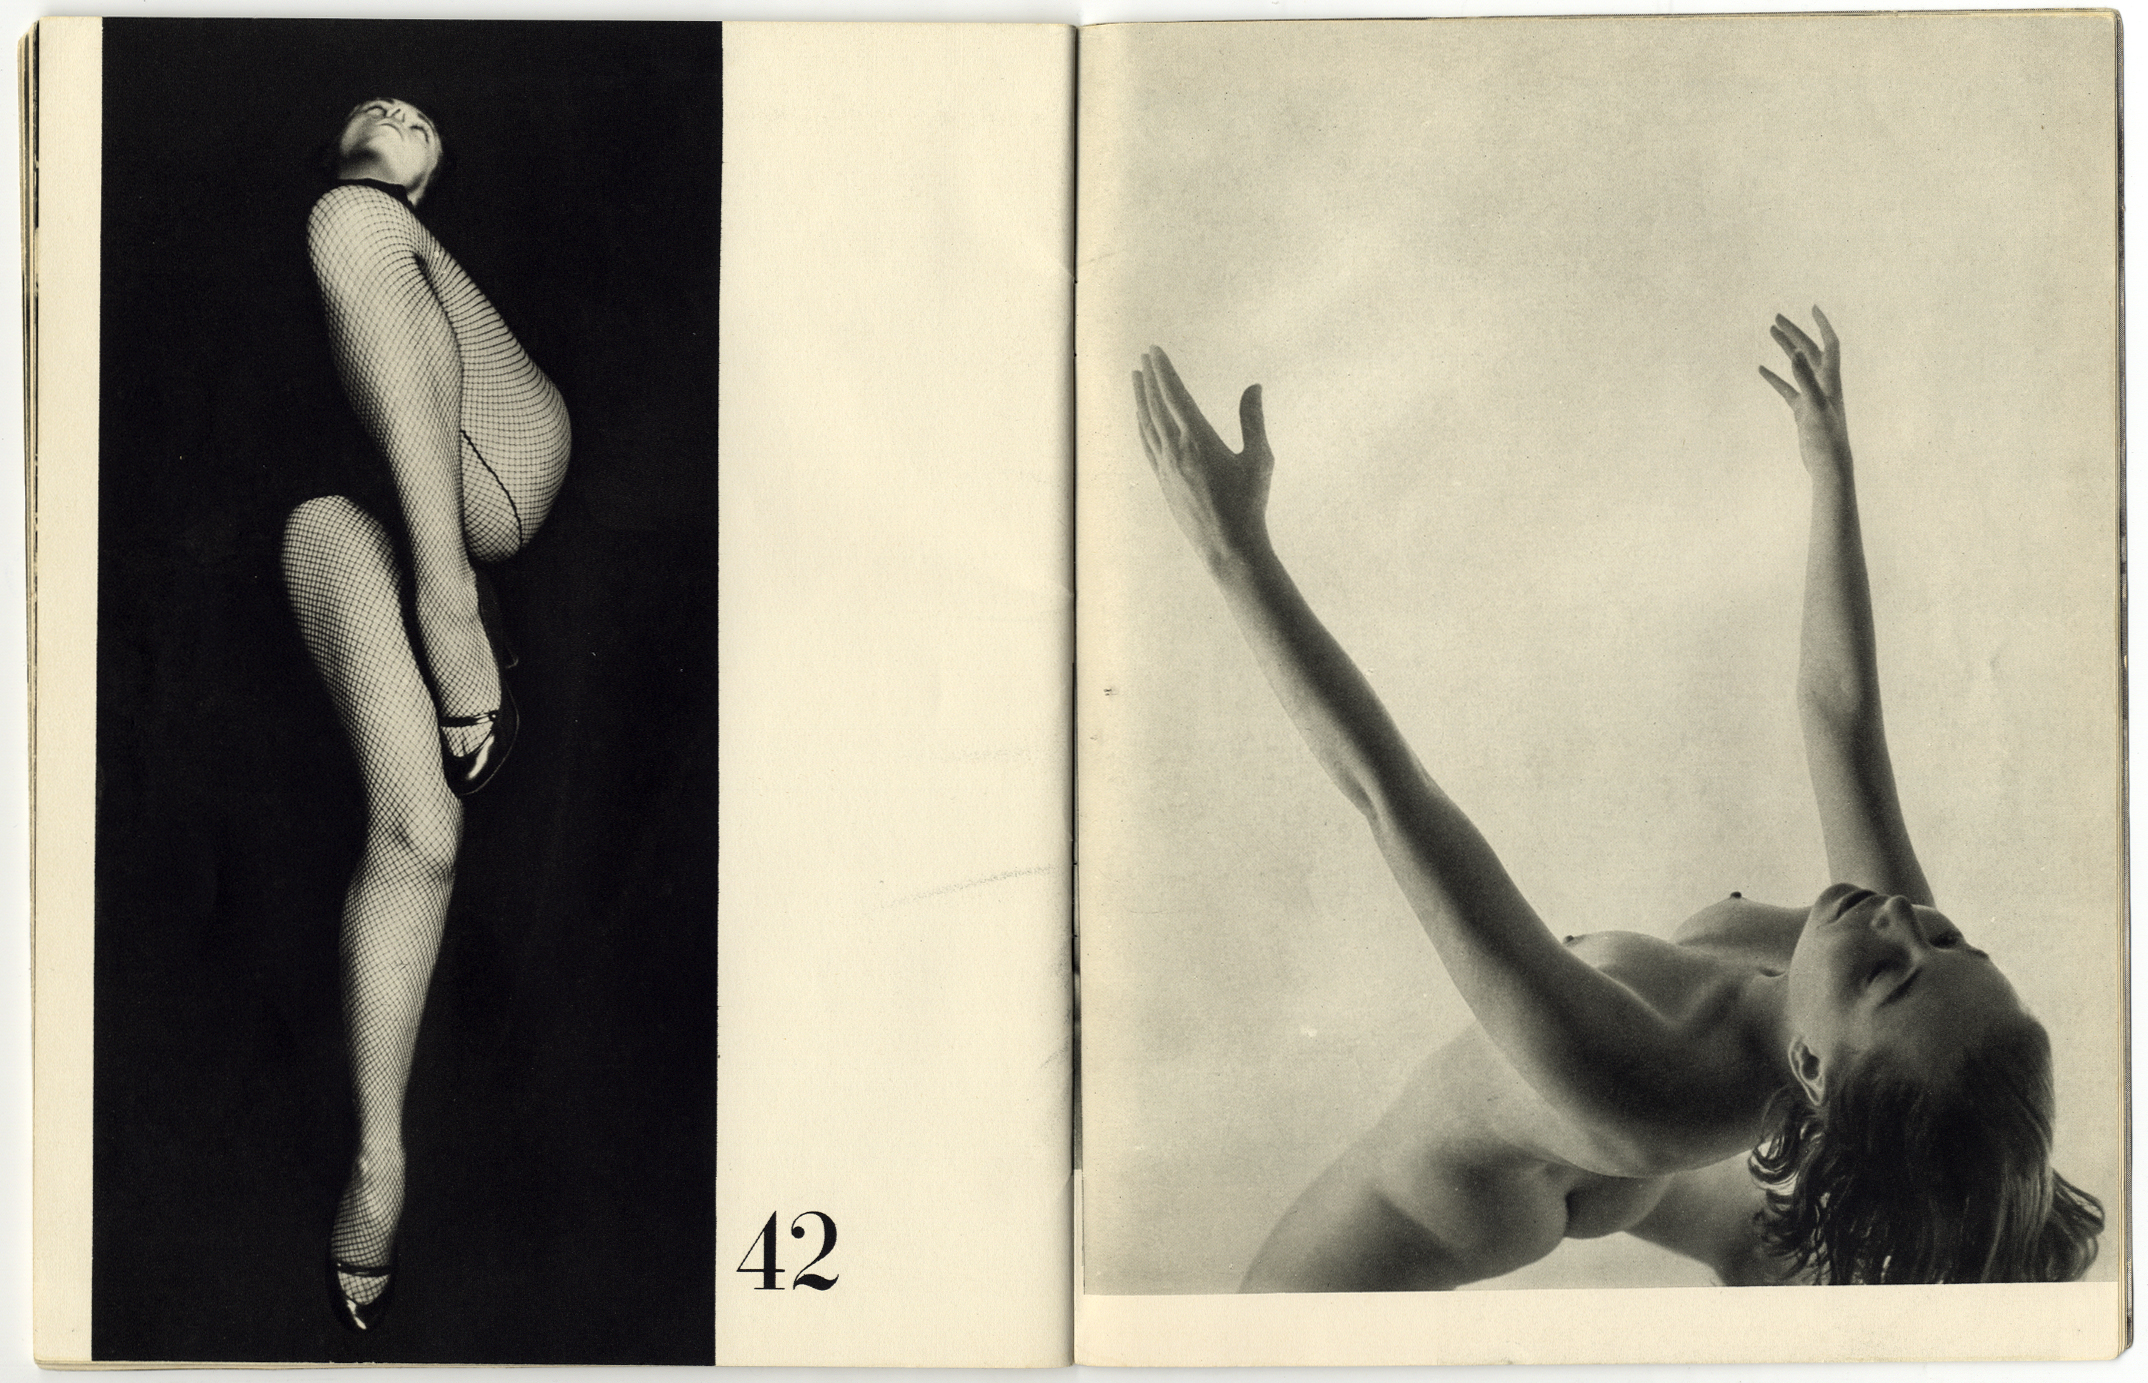 Vintage Photography Collection 21